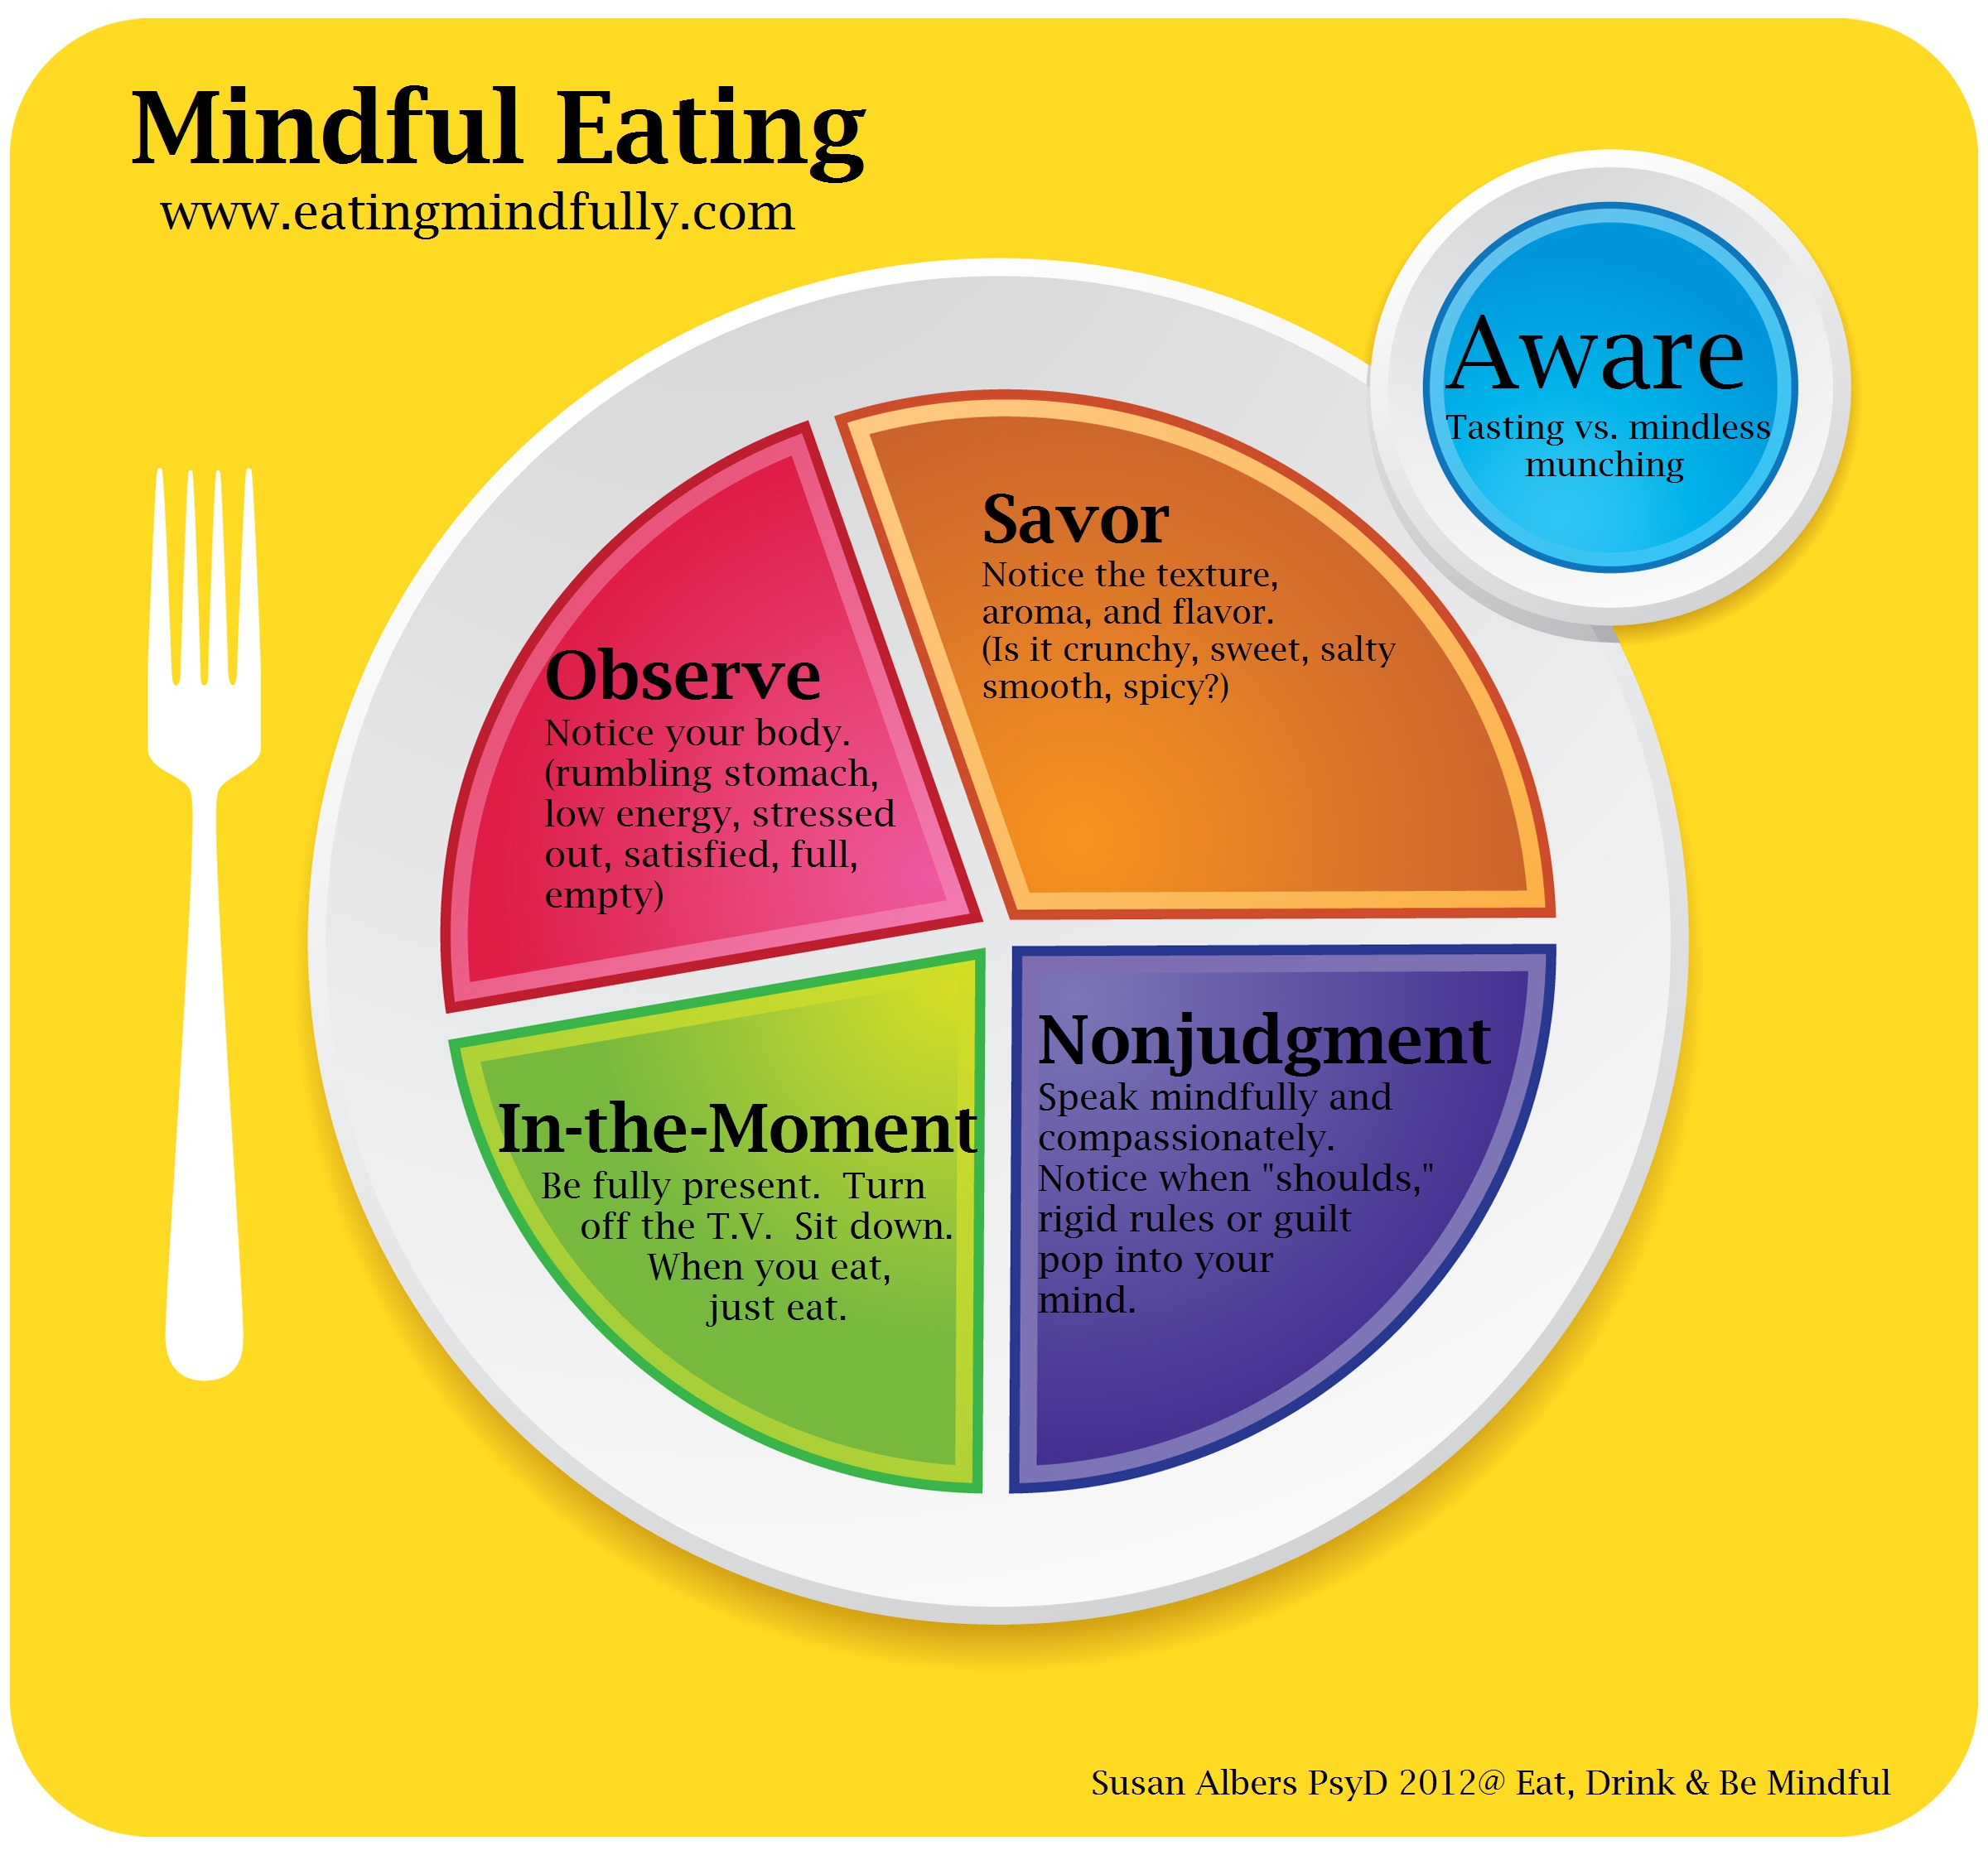 Mindful eating is a great way to control eating